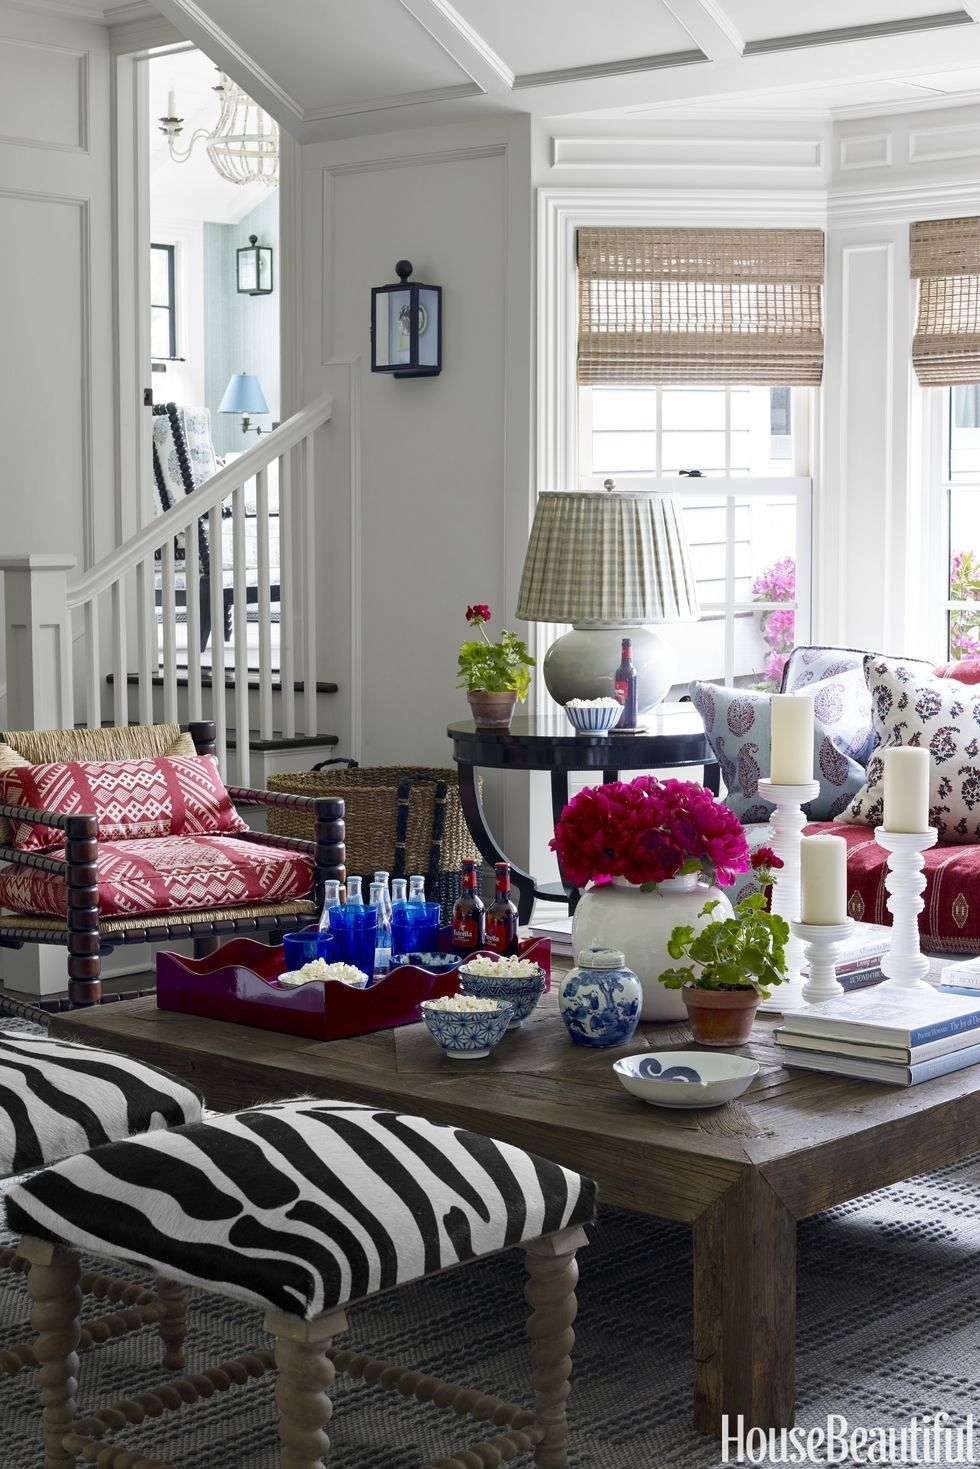 A designer took her love of vivid patterns and romantic color schemes to new heights